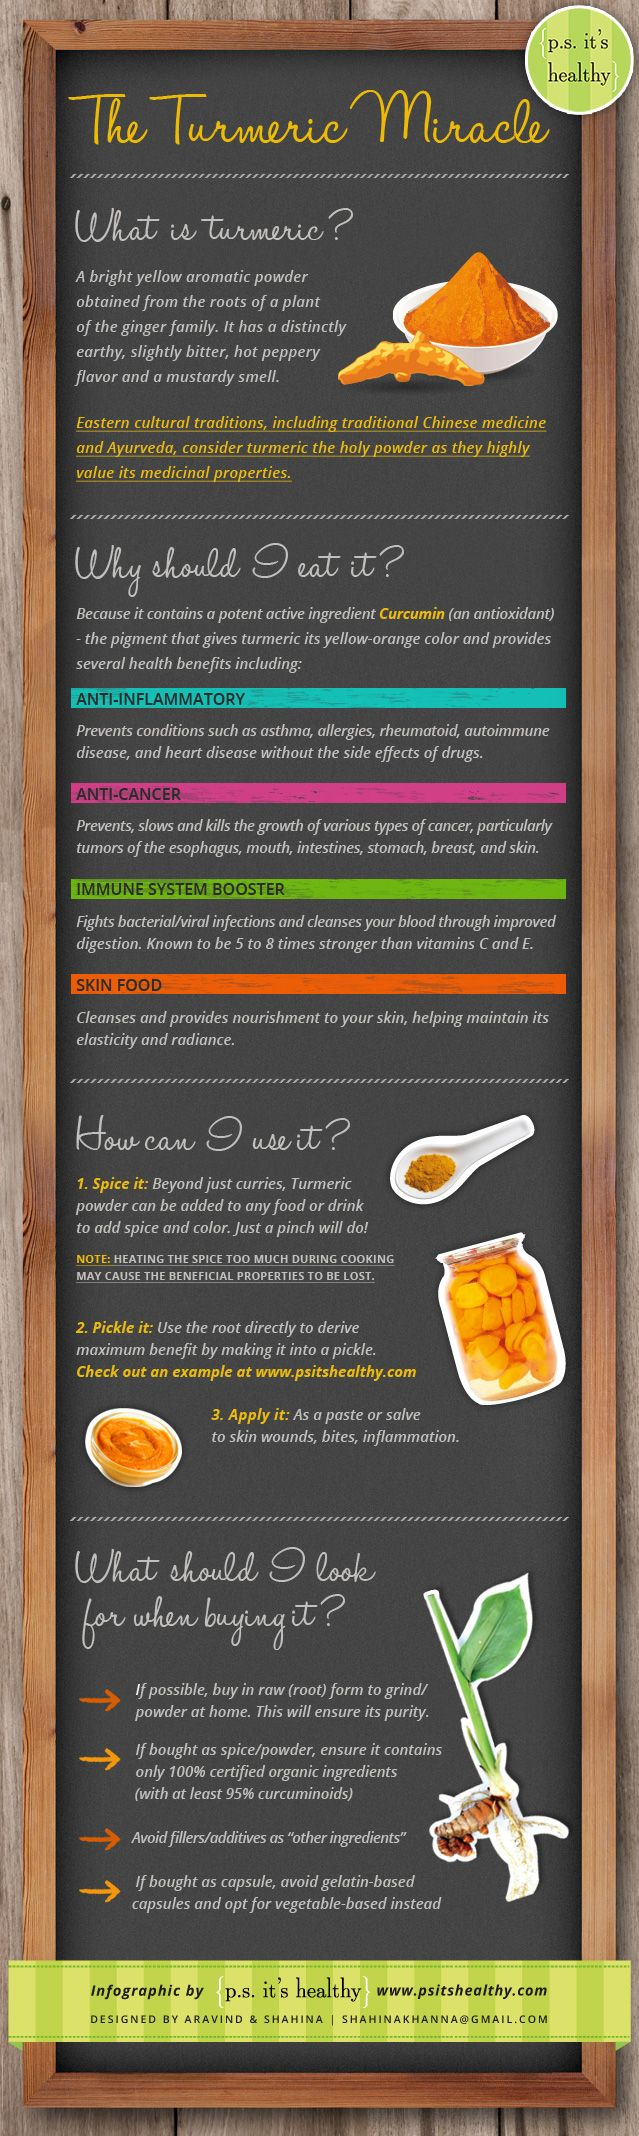 The Turmeric Miracle #health #remedies